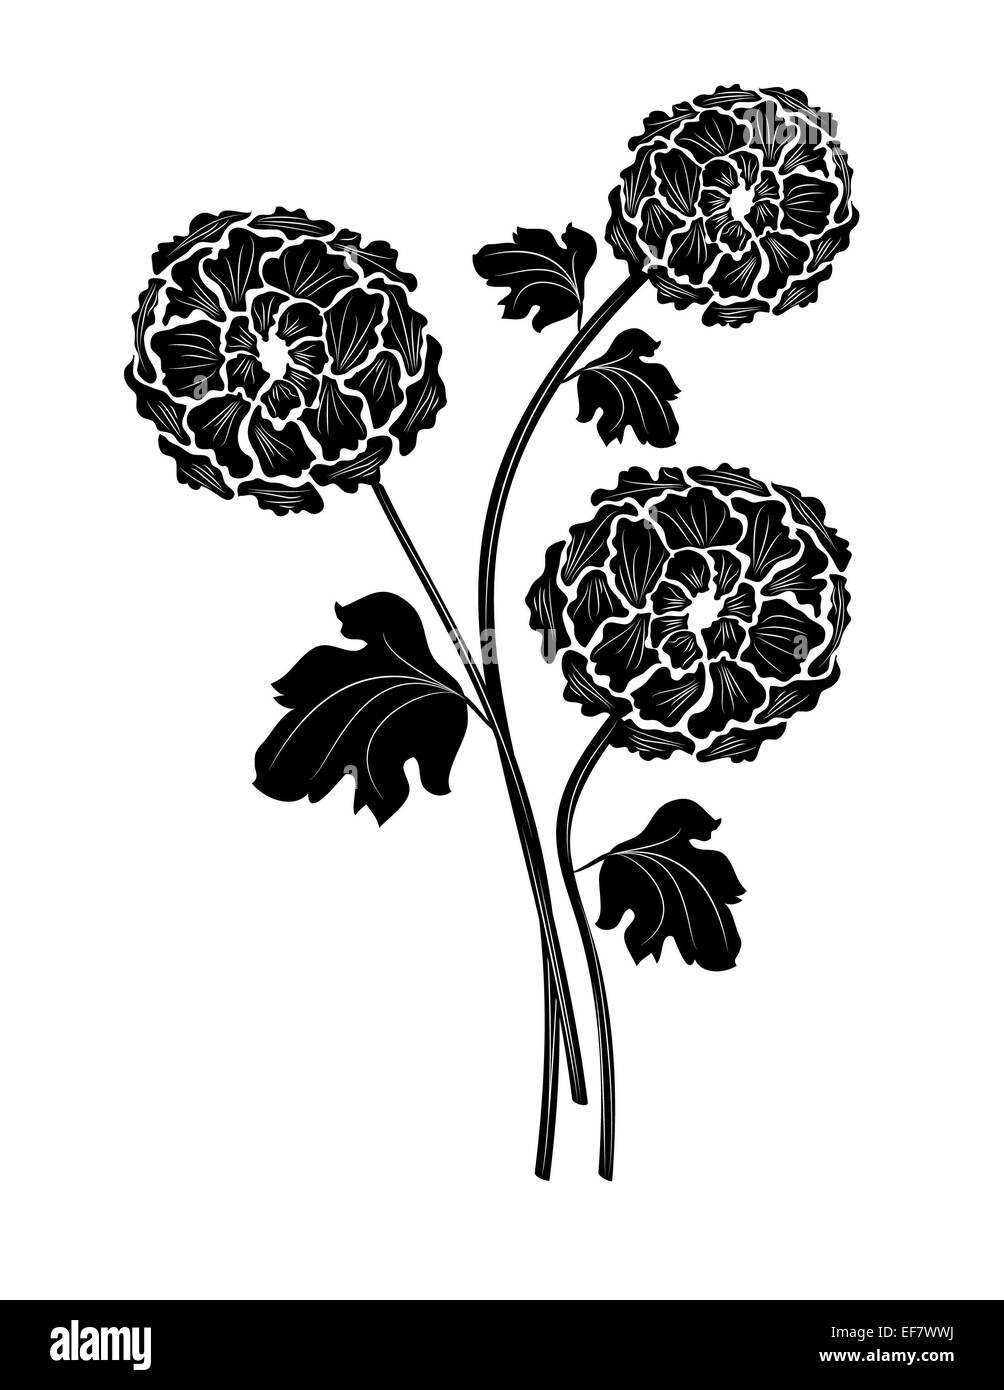 Lovely black and white illustration of three beautiful flowers with stems and leaves for decorative purposes and - Stock Image